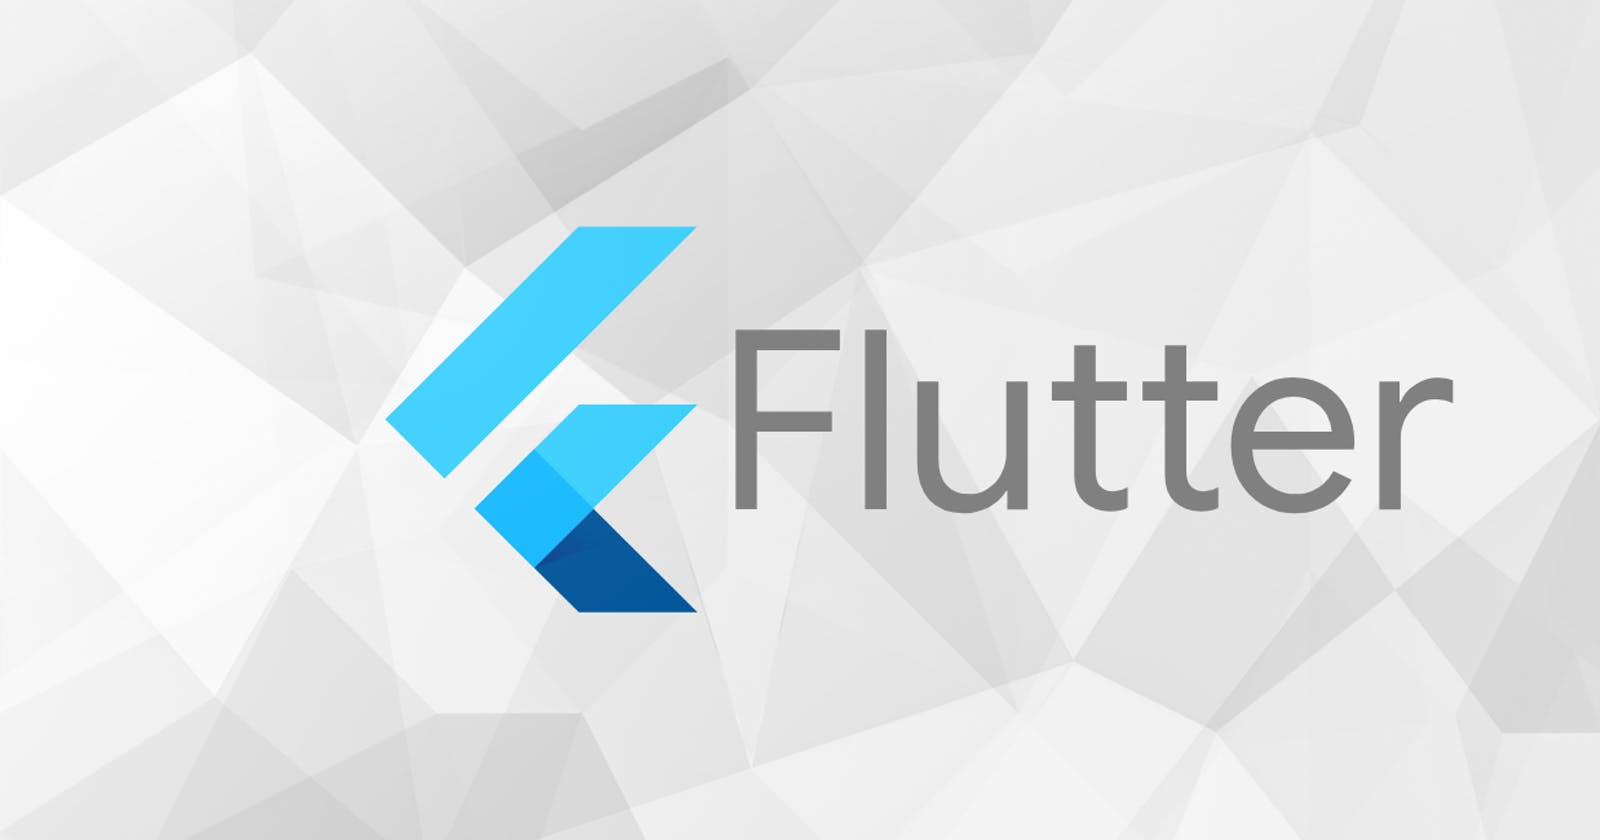 #Flutter: A short intro to OOP